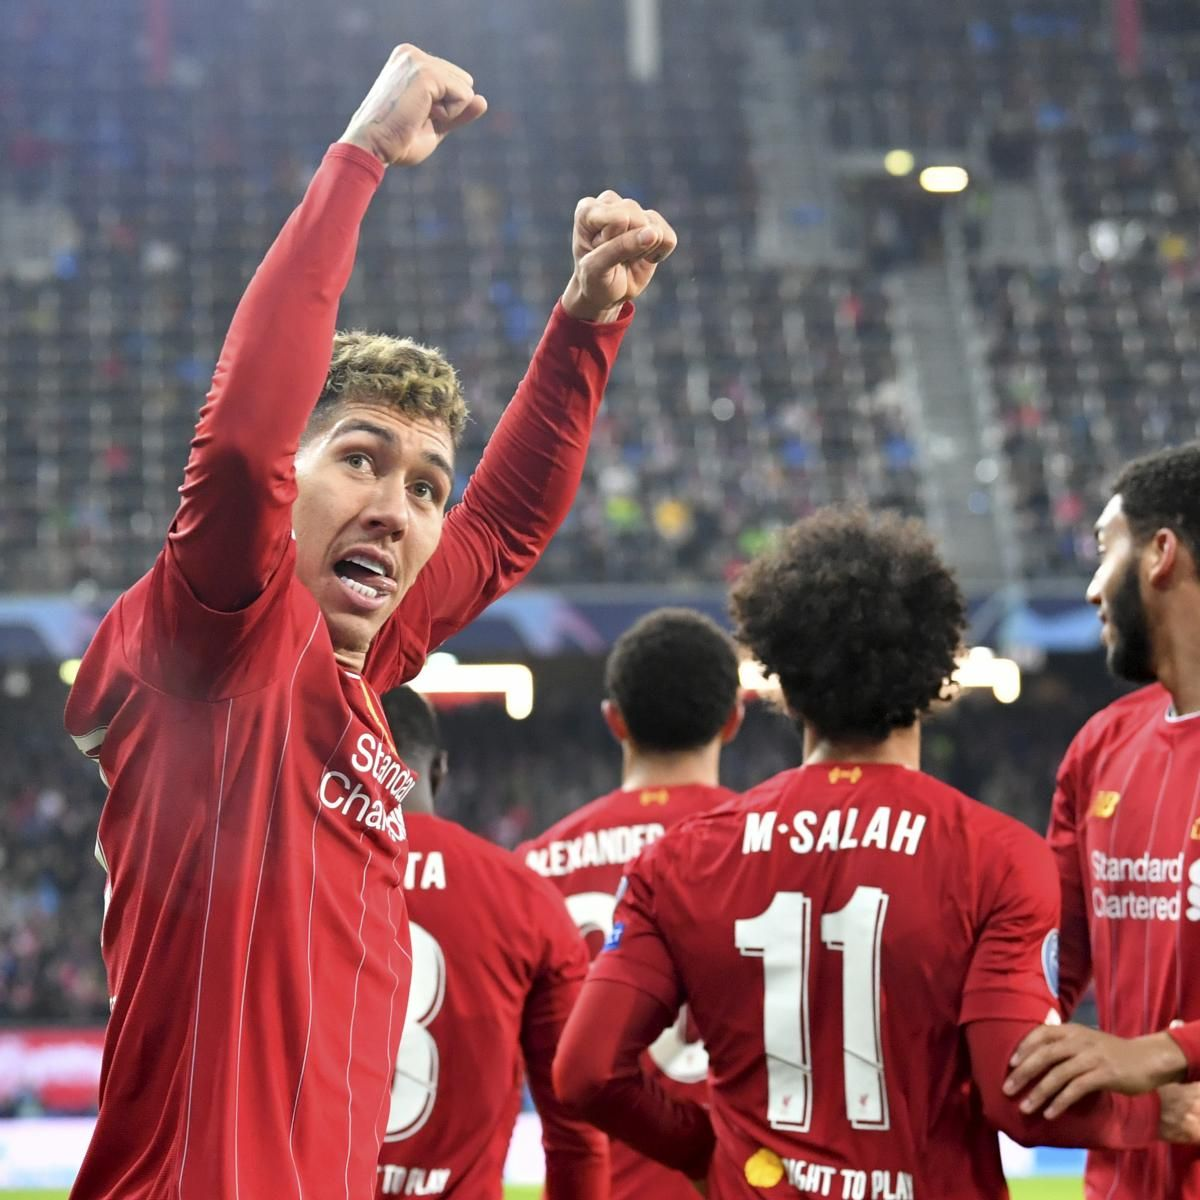 UEFA Champions and Europa League 2020 Round of 16 Live